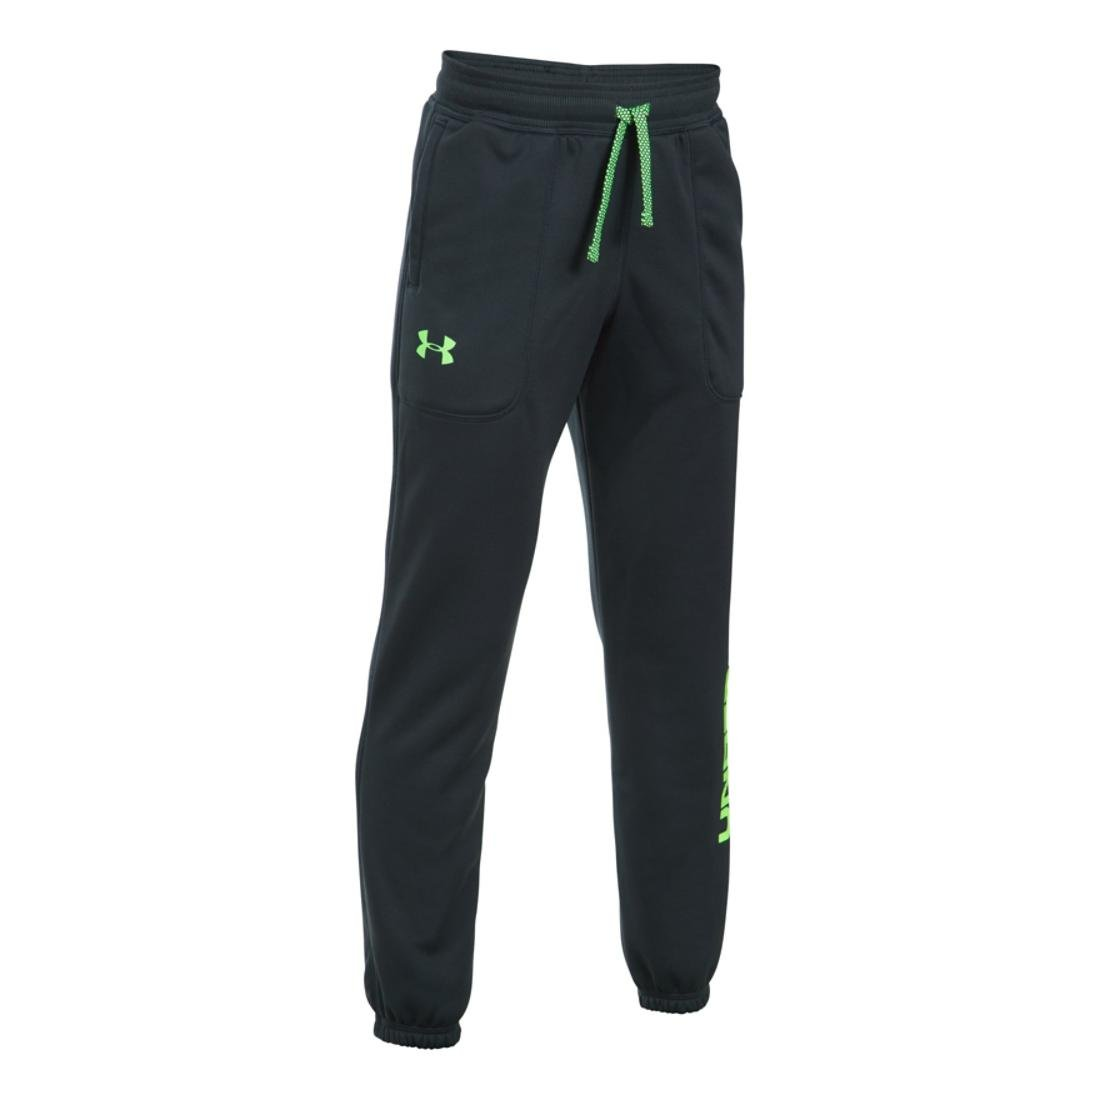 Under Armour Boys Armour Fleece Jogger, Anthracite/Lime, SM (8 Big Kids) x One Size by Under Armour (Image #1)